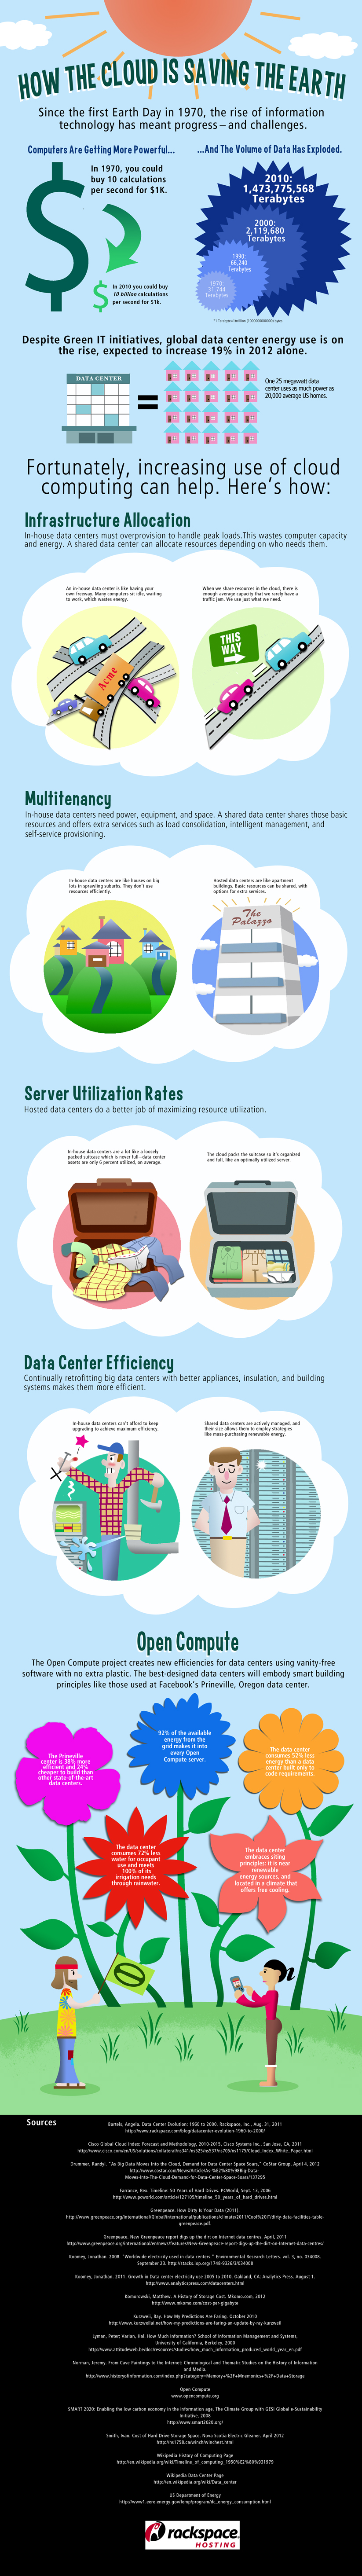 Rackspace® — [INFOGRAPHIC] How Cloud Computing is Saving the Earth